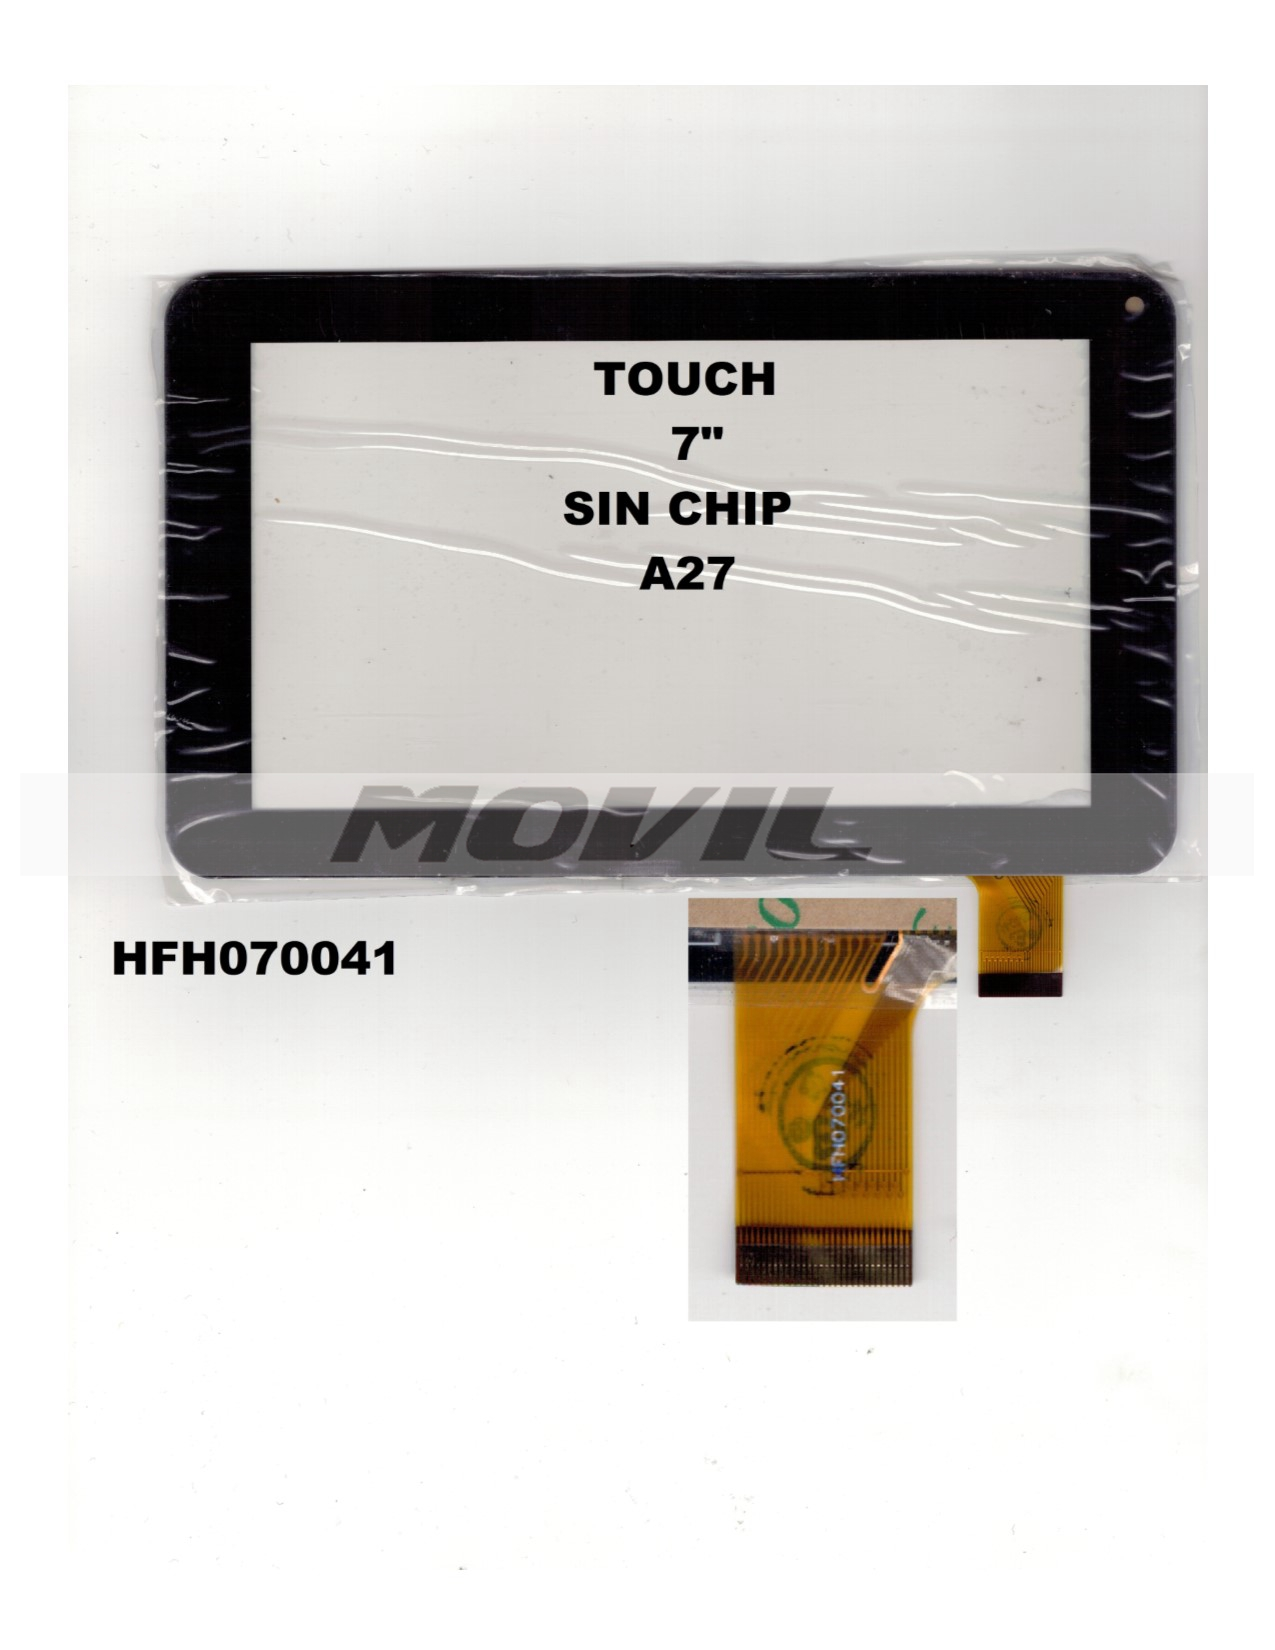 Touch tactil para tablet flex 7 inch SIN CHIP A27 HFH070041